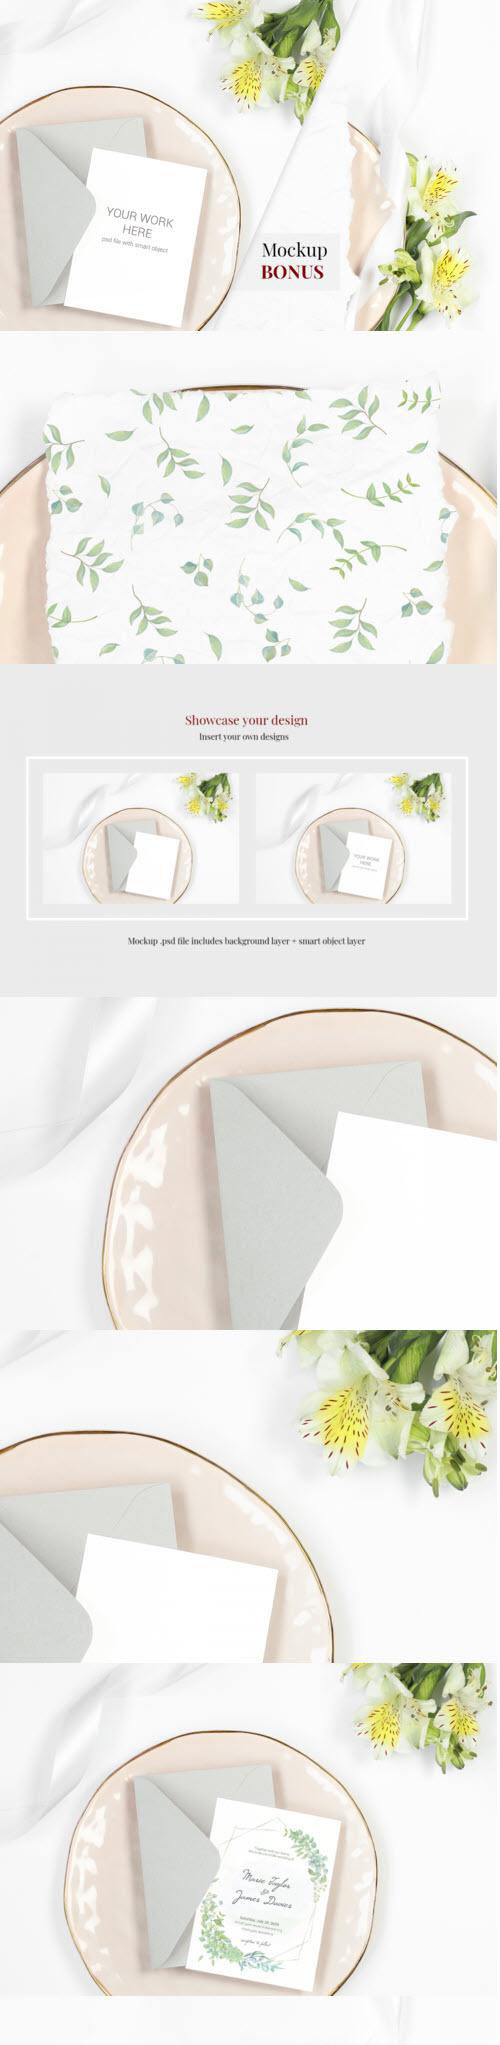 Card Mockup on plate with flowers. BONUS - 405668 - 2217976